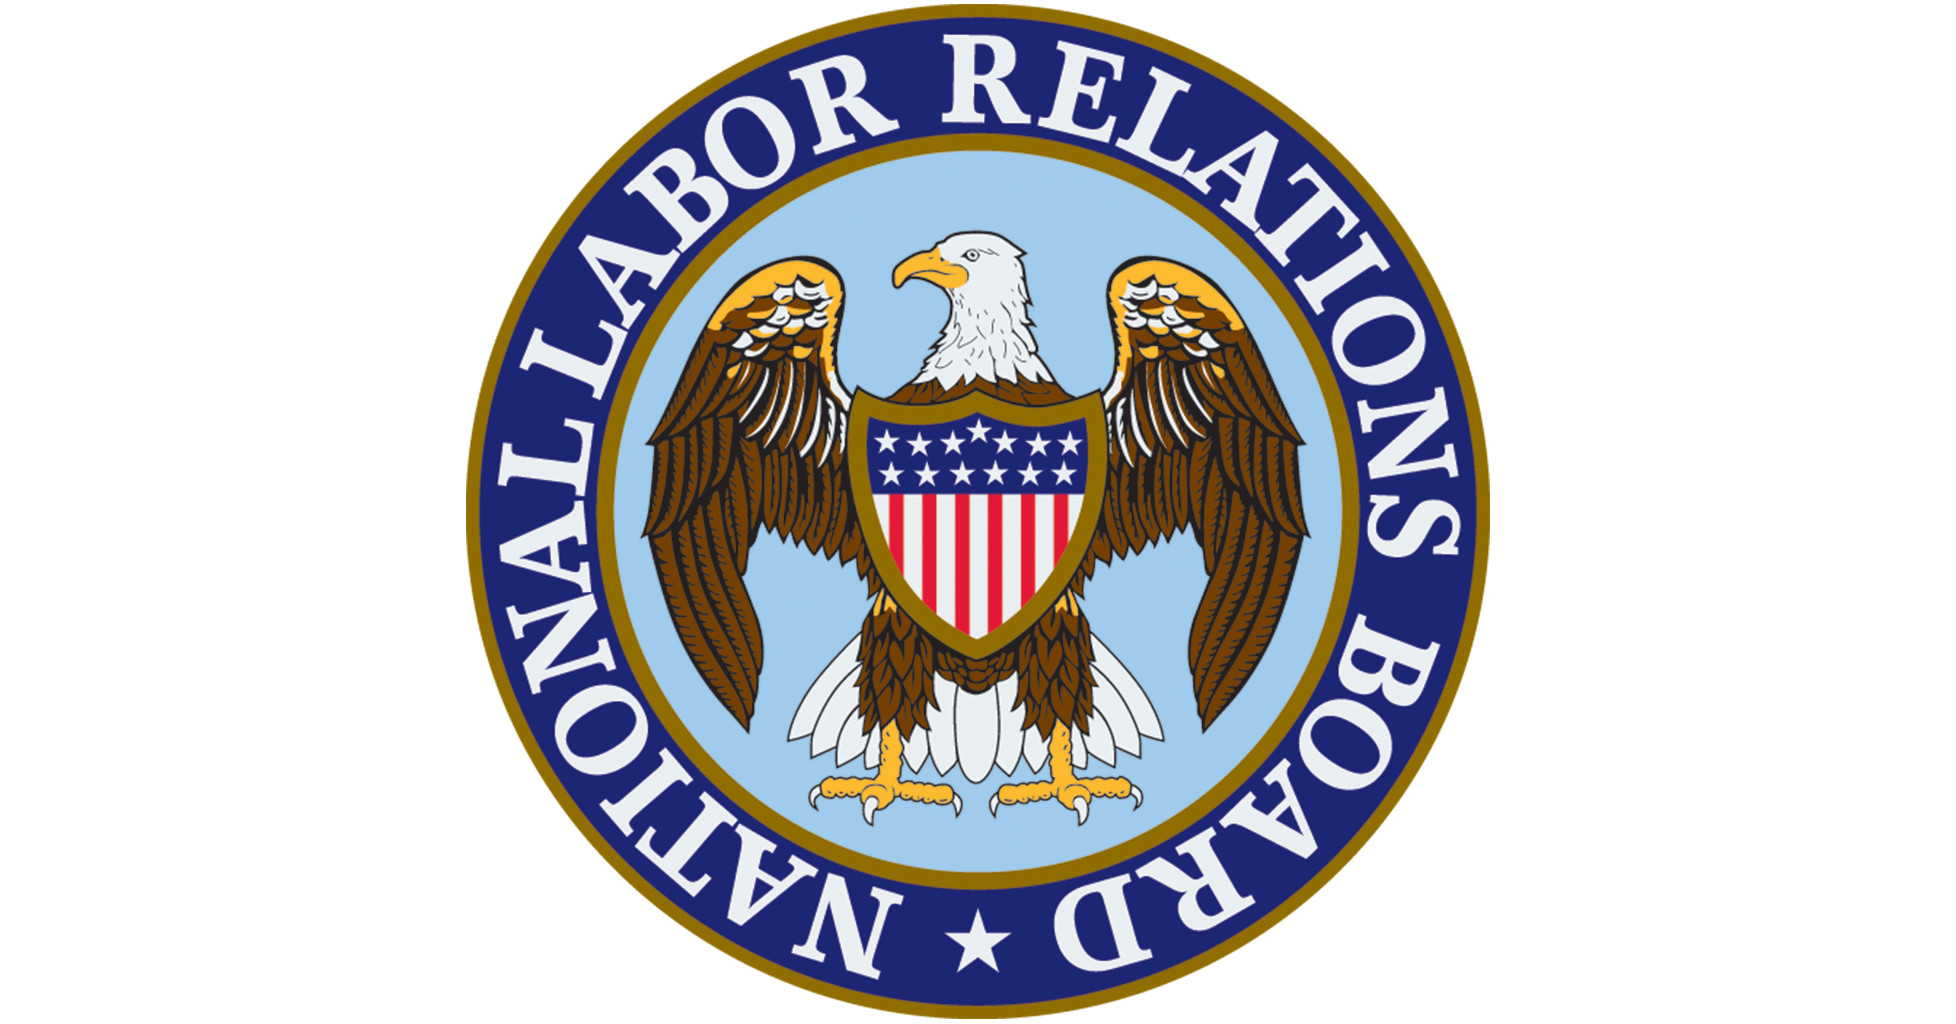 california-national-right-to-work-foundation-workers-strikes-back-after-the-regional-labor-office-addresses-concerns-about-the-manipulation-of-absentee-ballots-by-teamsters-union-officials